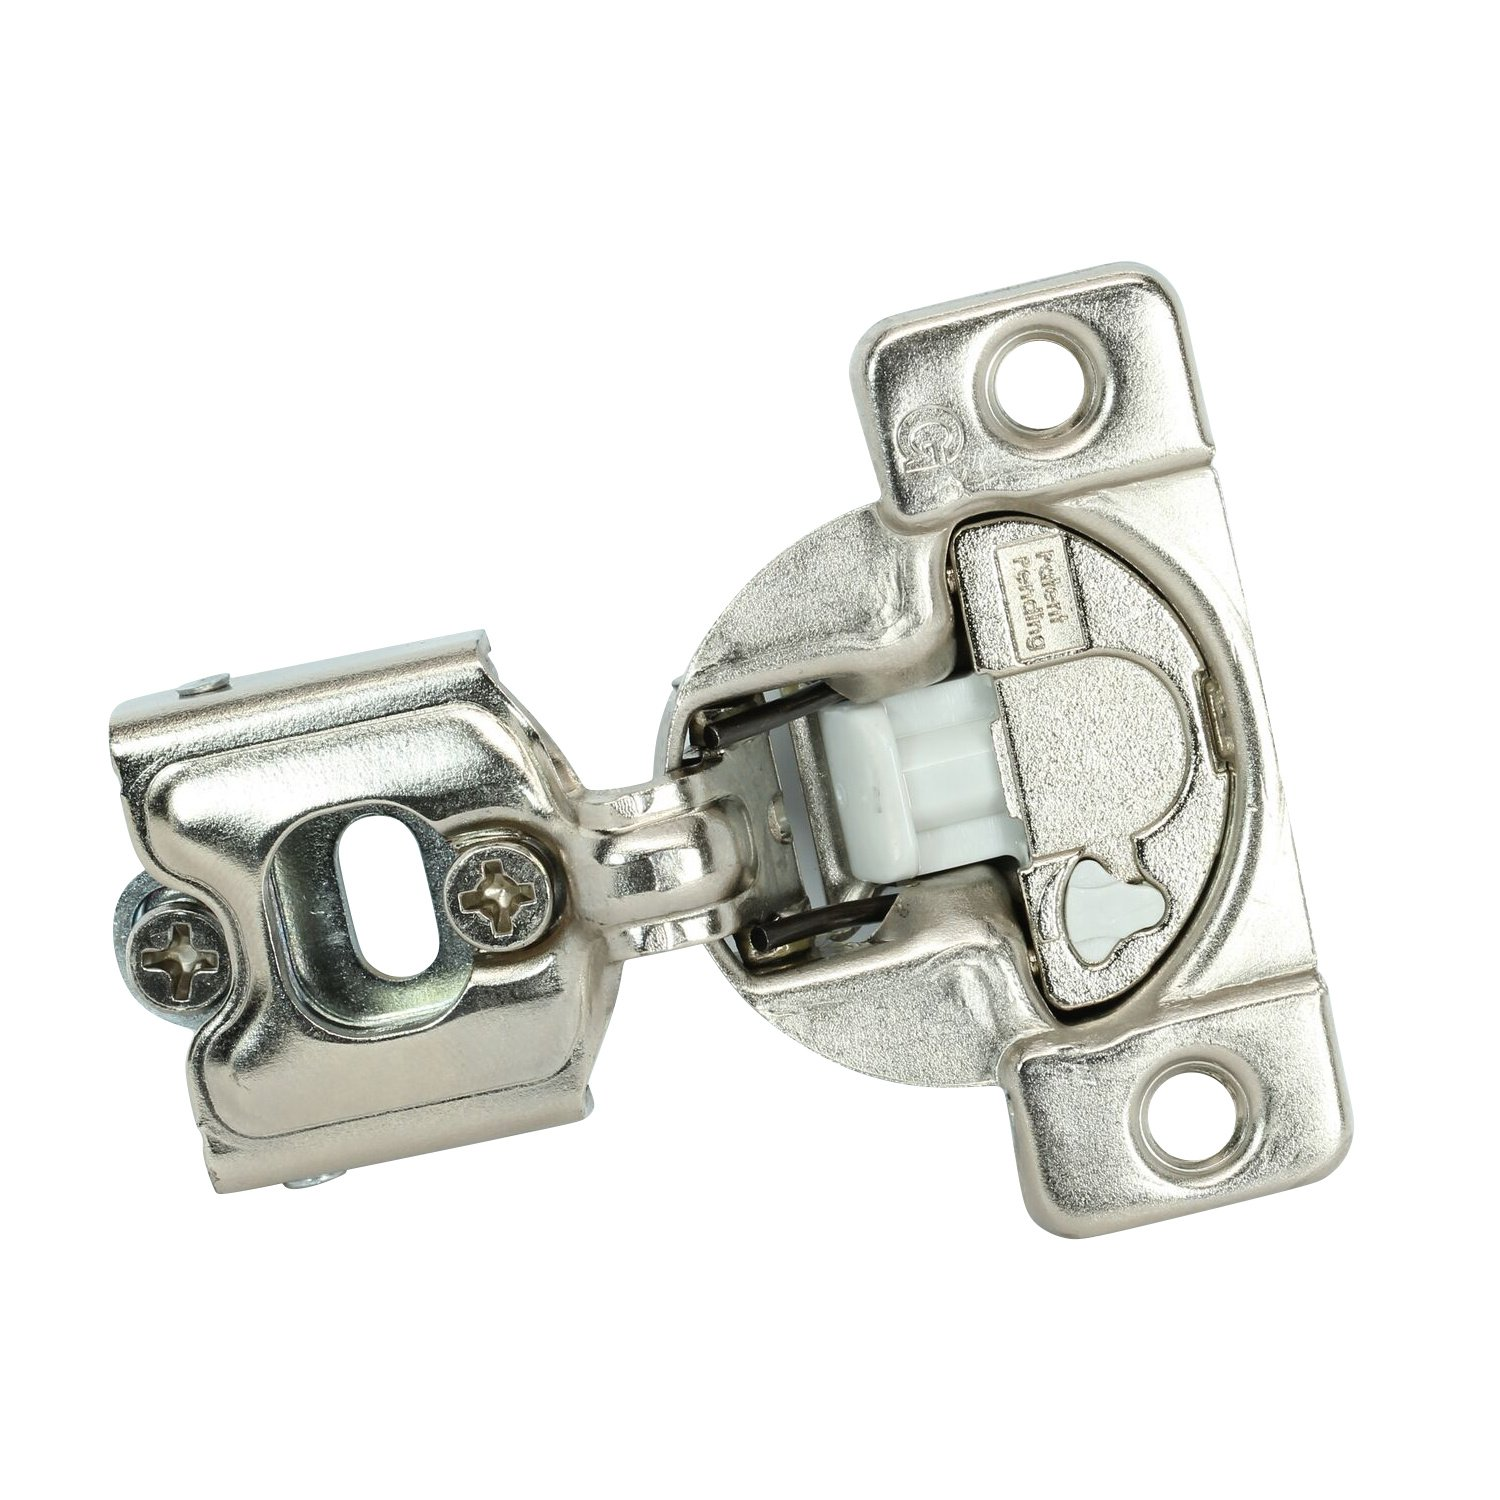 50 Pack Rok Hardware Grass TEC 864 108 Degree 1/4'' Overlay 3 Level Soft Close Screw On Compact Cabinet Hinge 04429A-15 3-Way Adjustment 45mm Boring Pattern